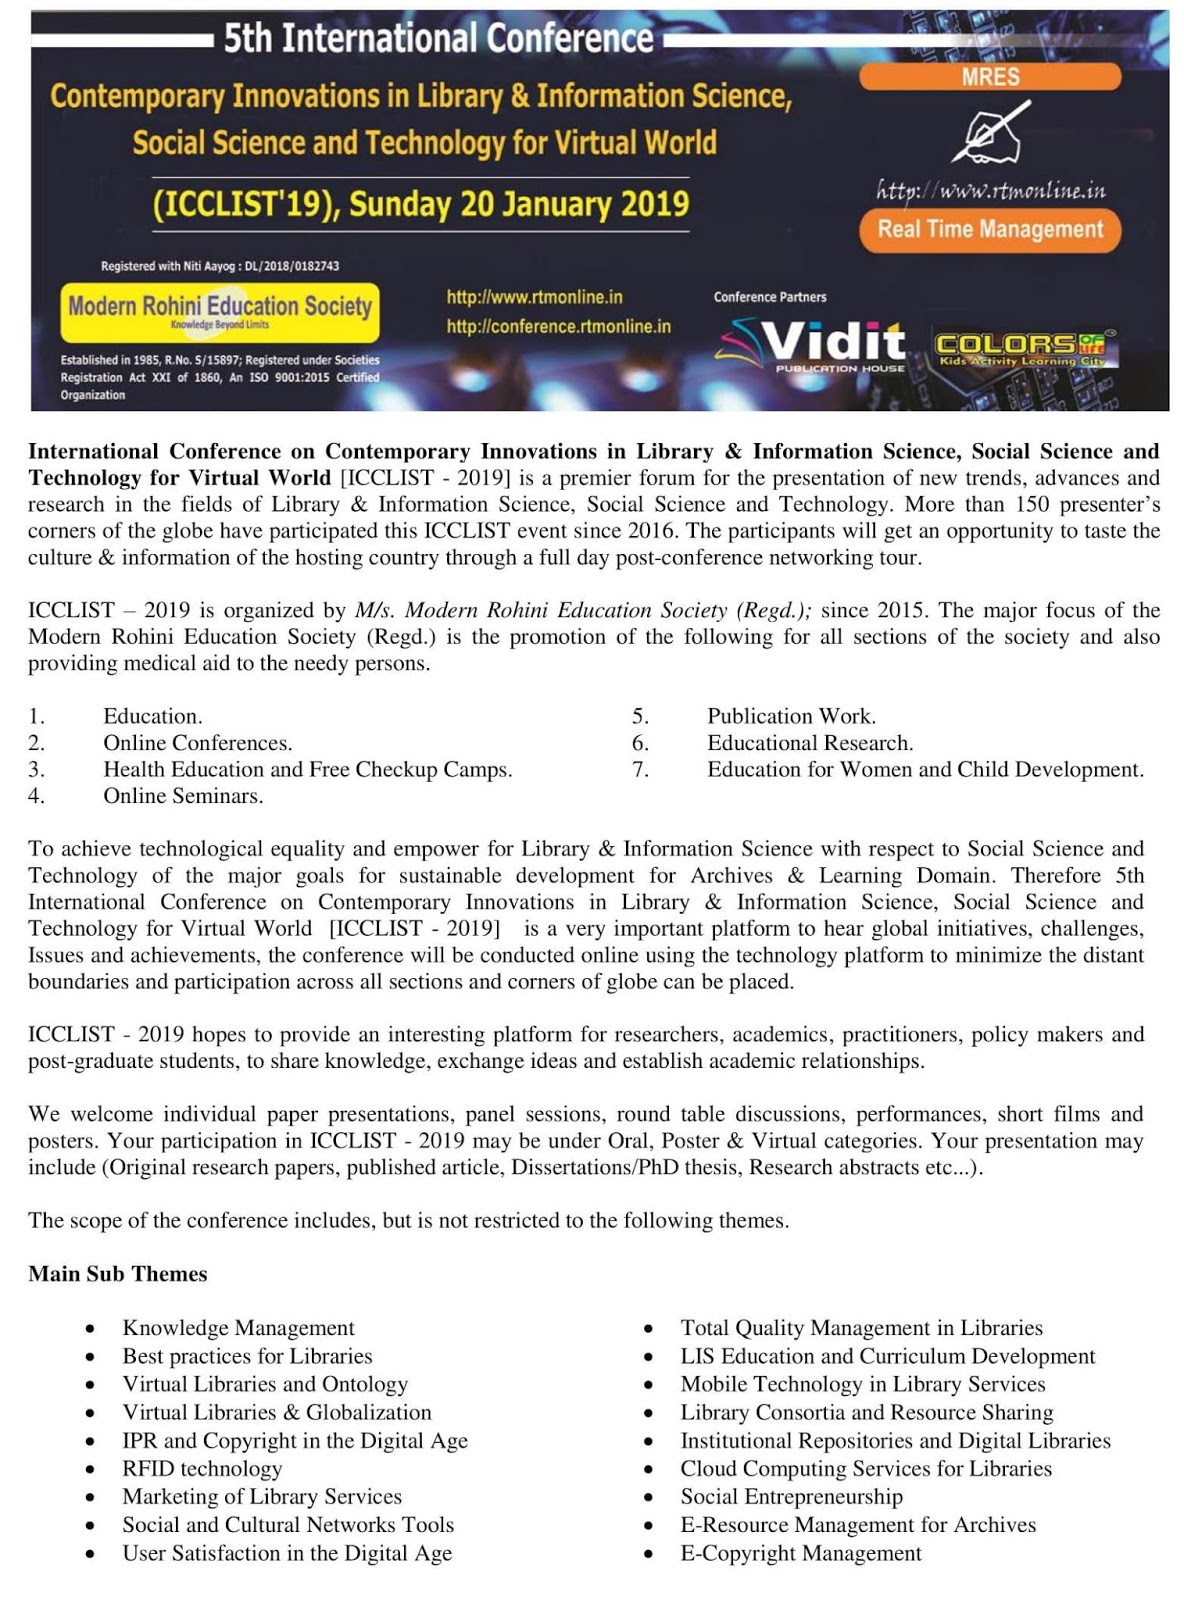 Library Science Professionals Portal: 5th International Conference